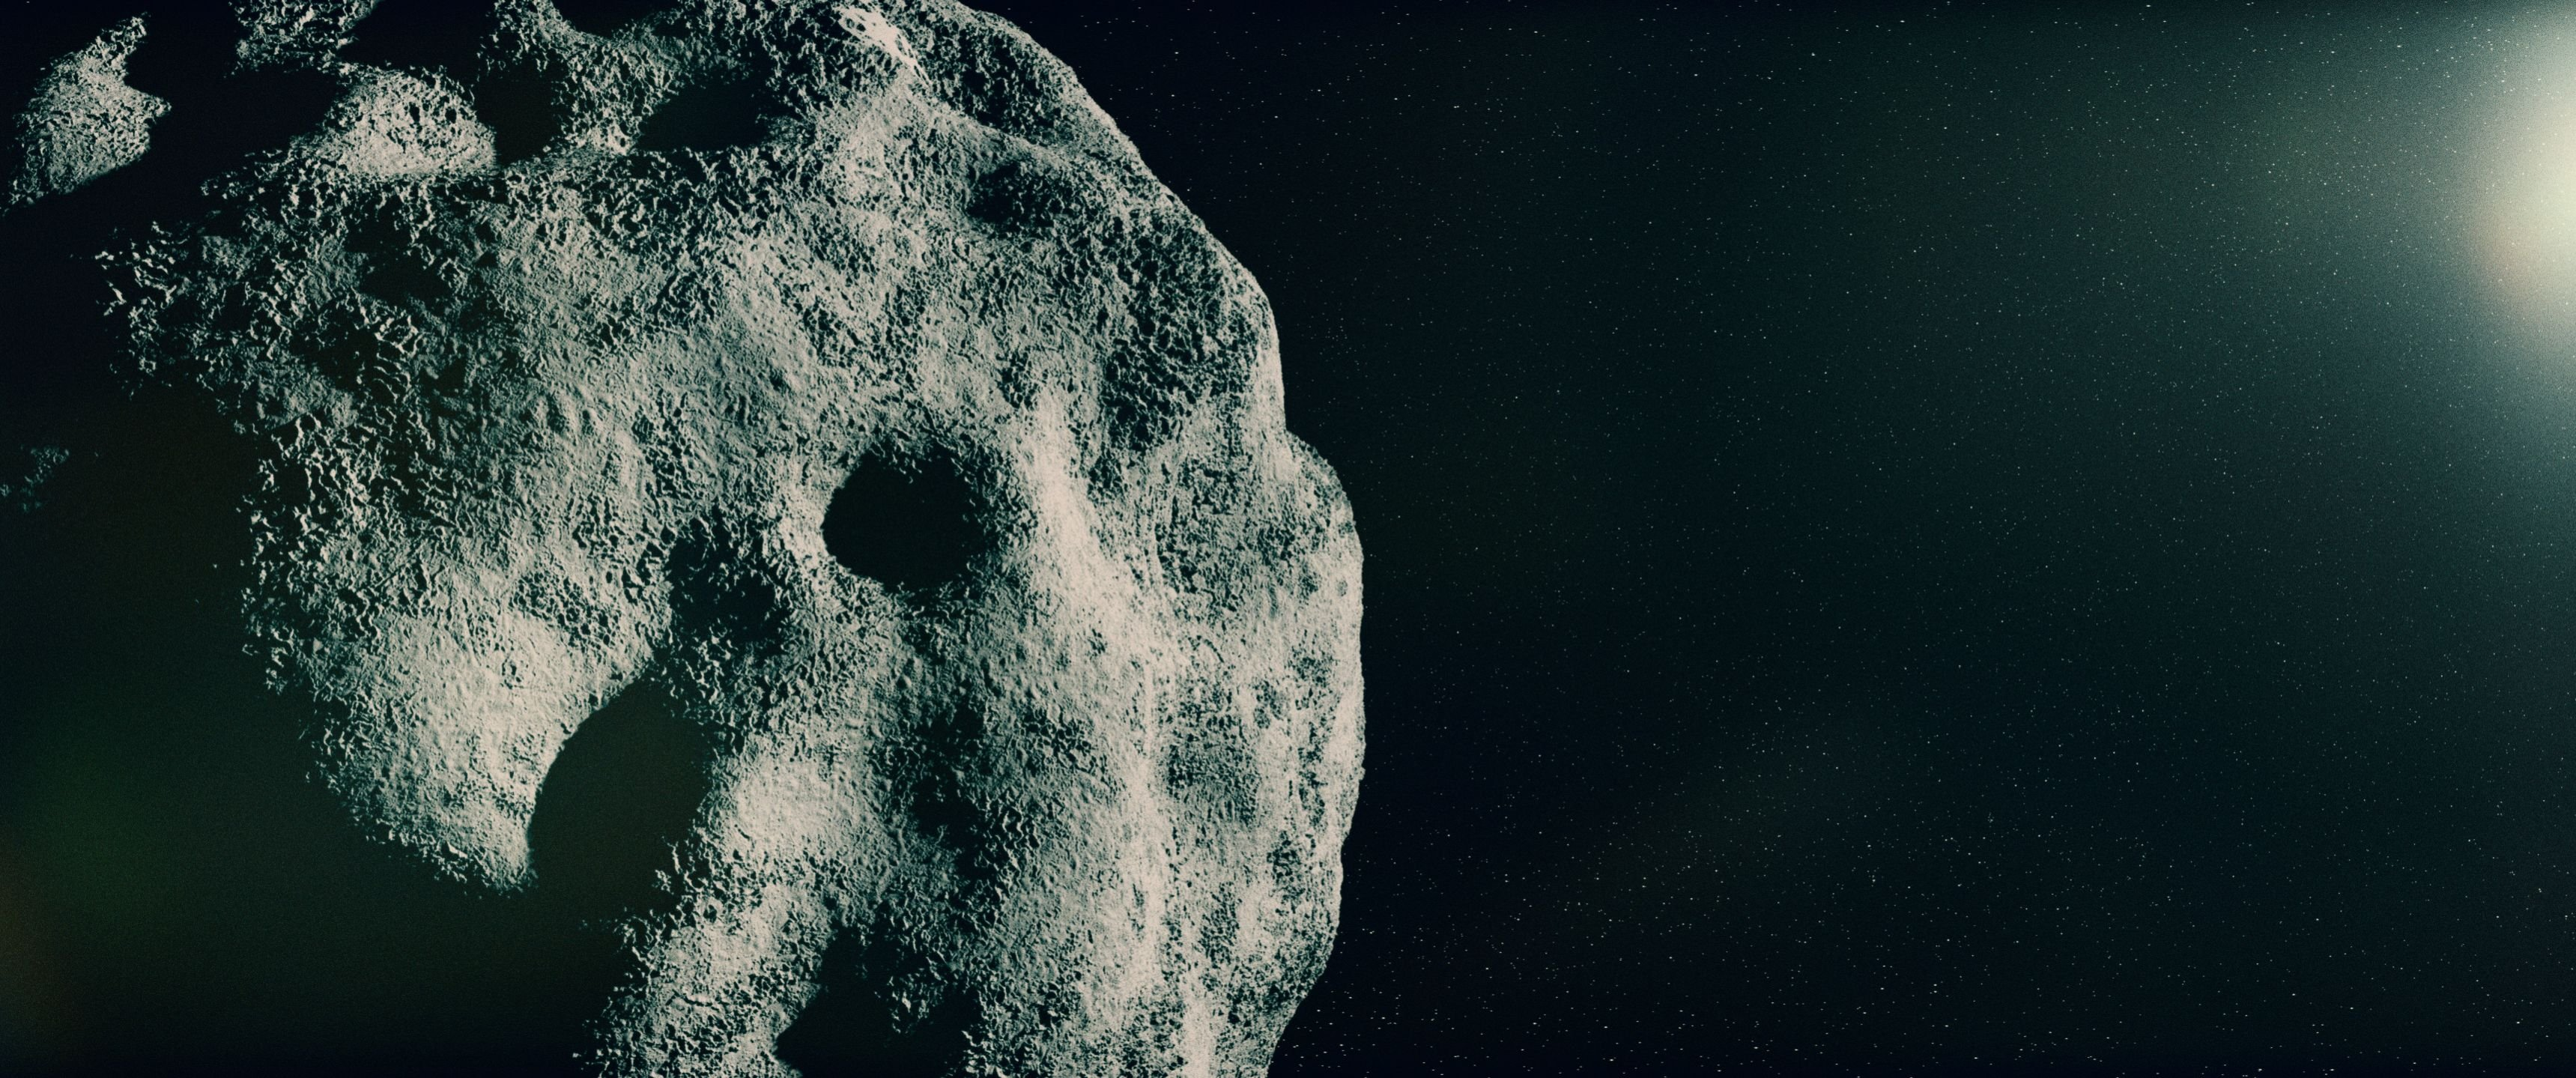 Asteroid - High Definition Wallpaper